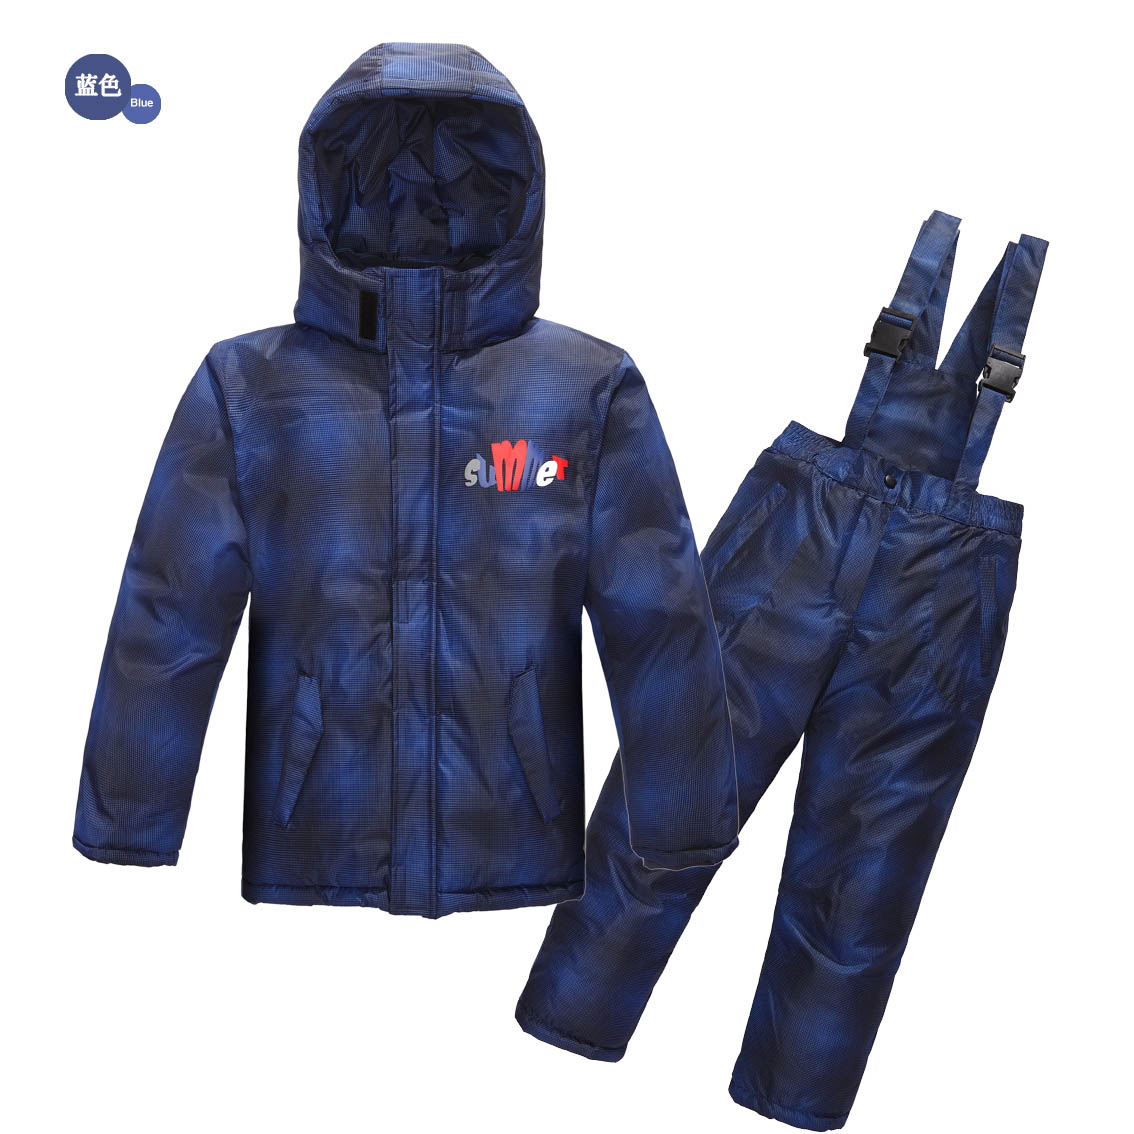 Shop our kids' The North Face sale now and discover the great savings on kids' North Face jackets on sale and much more!